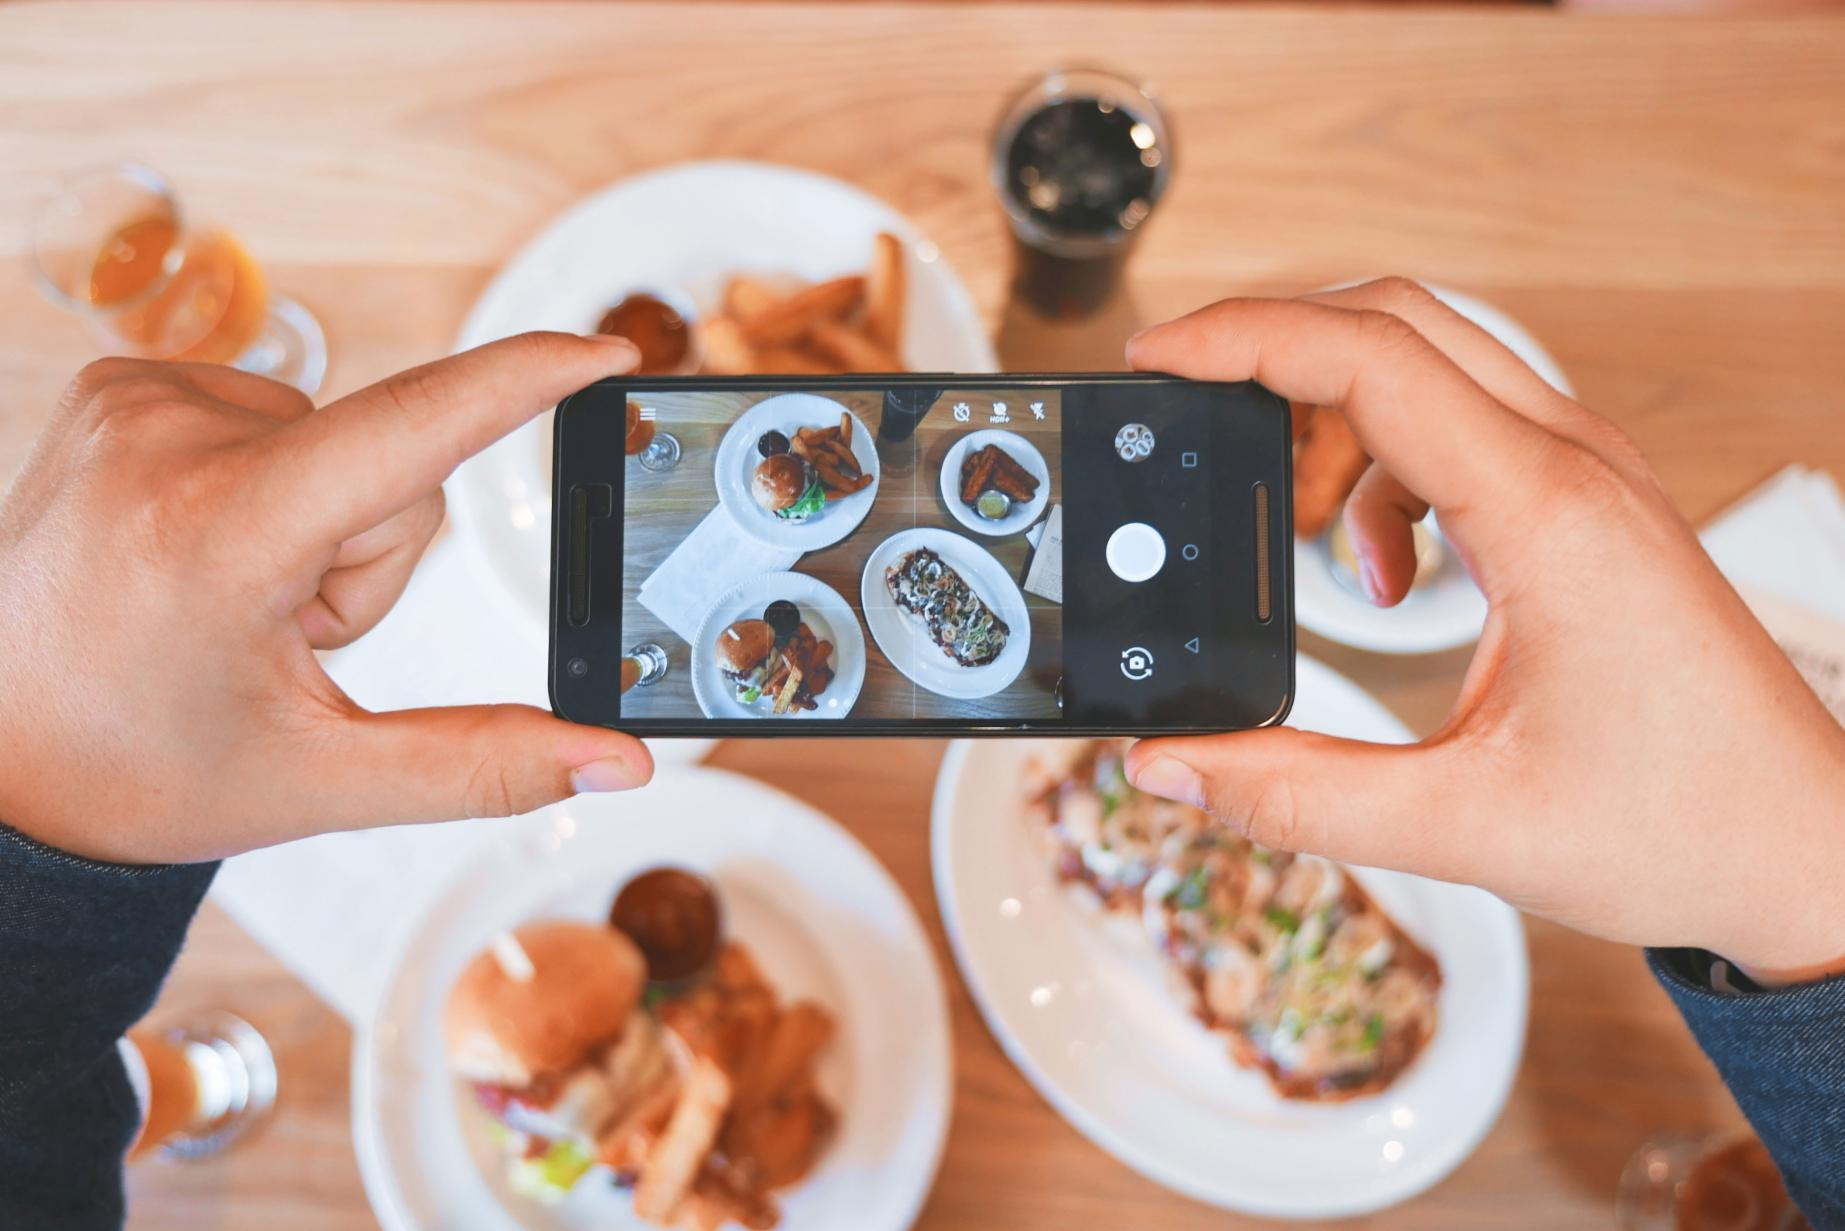 How often do you take a picture of your meal and share it on social media?